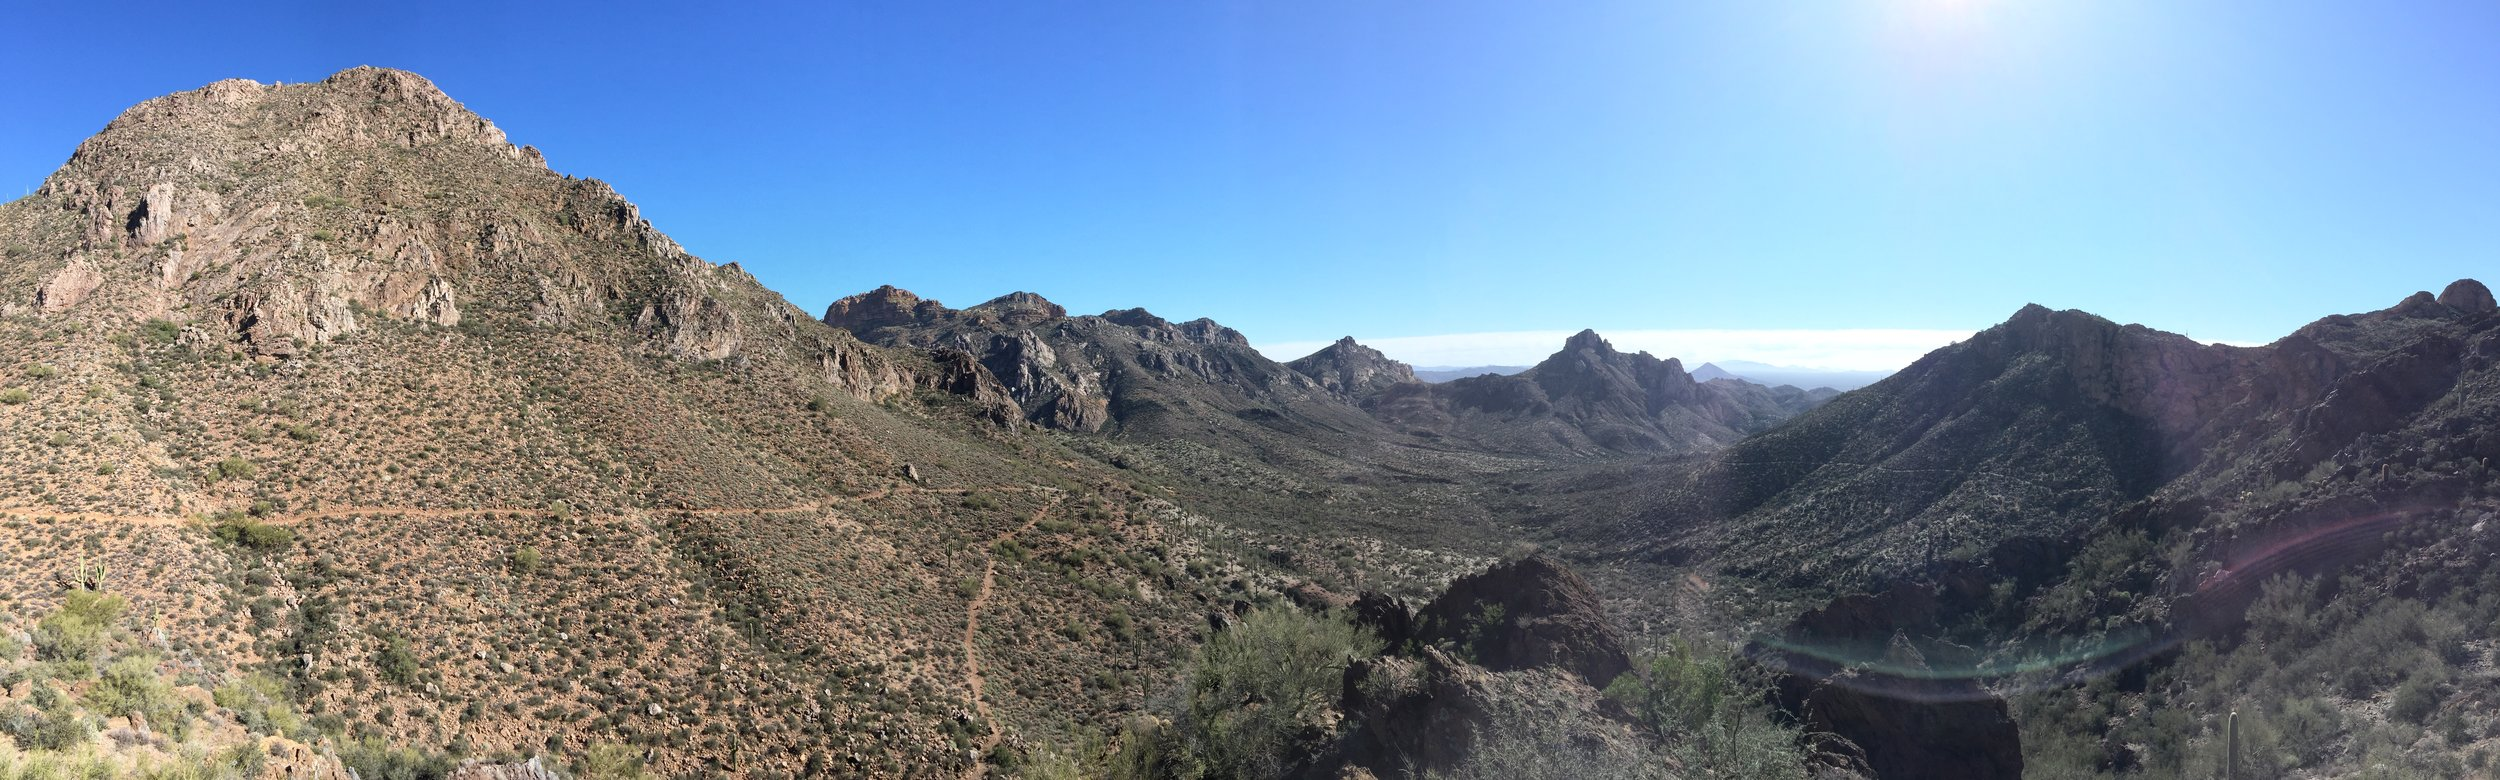 Making my way up into the mountains towards Tonto National Forest